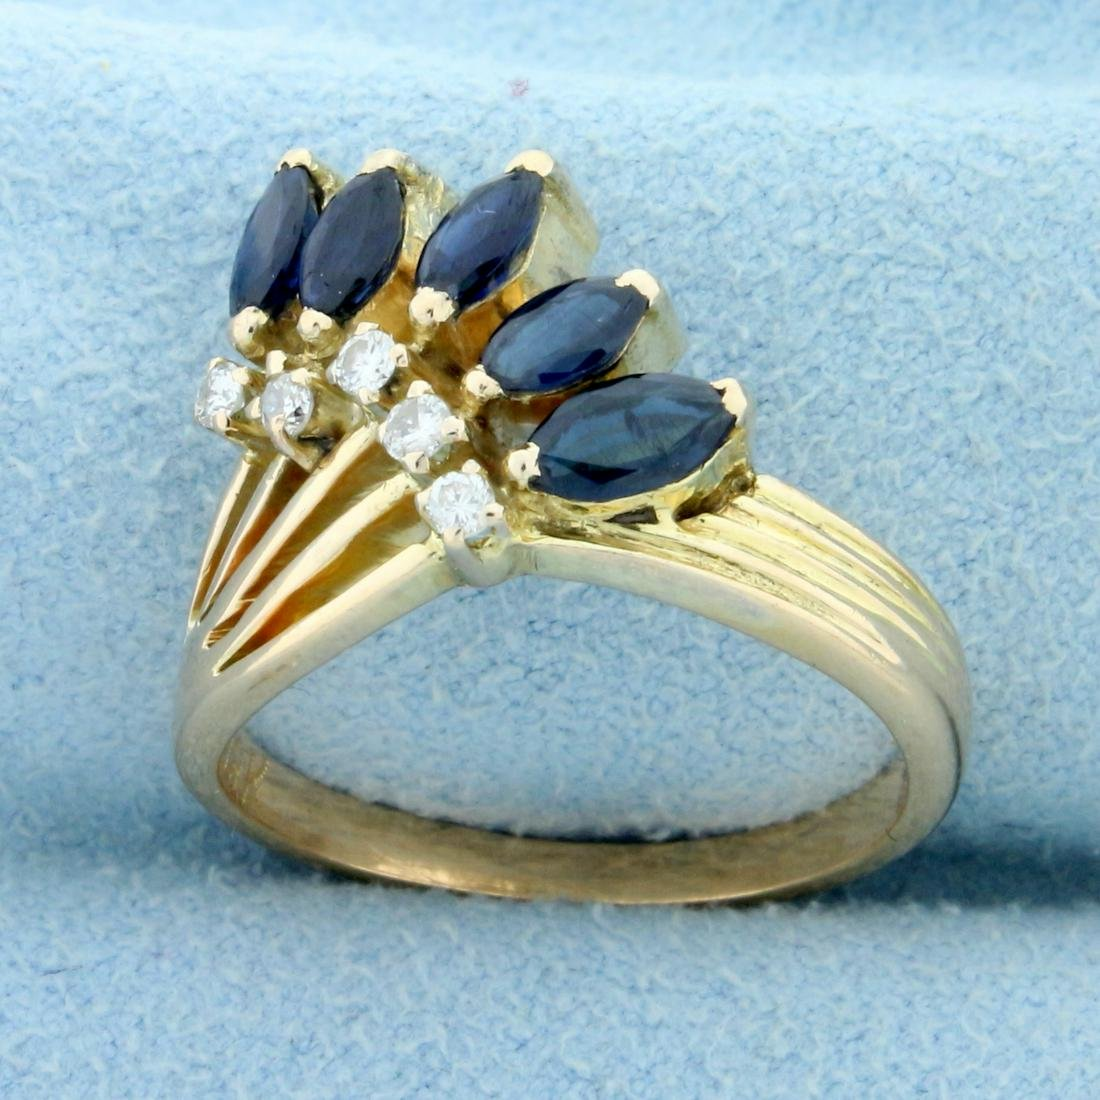 Unique Vintage Sapphire and Diamond Ring in 18K Yellow